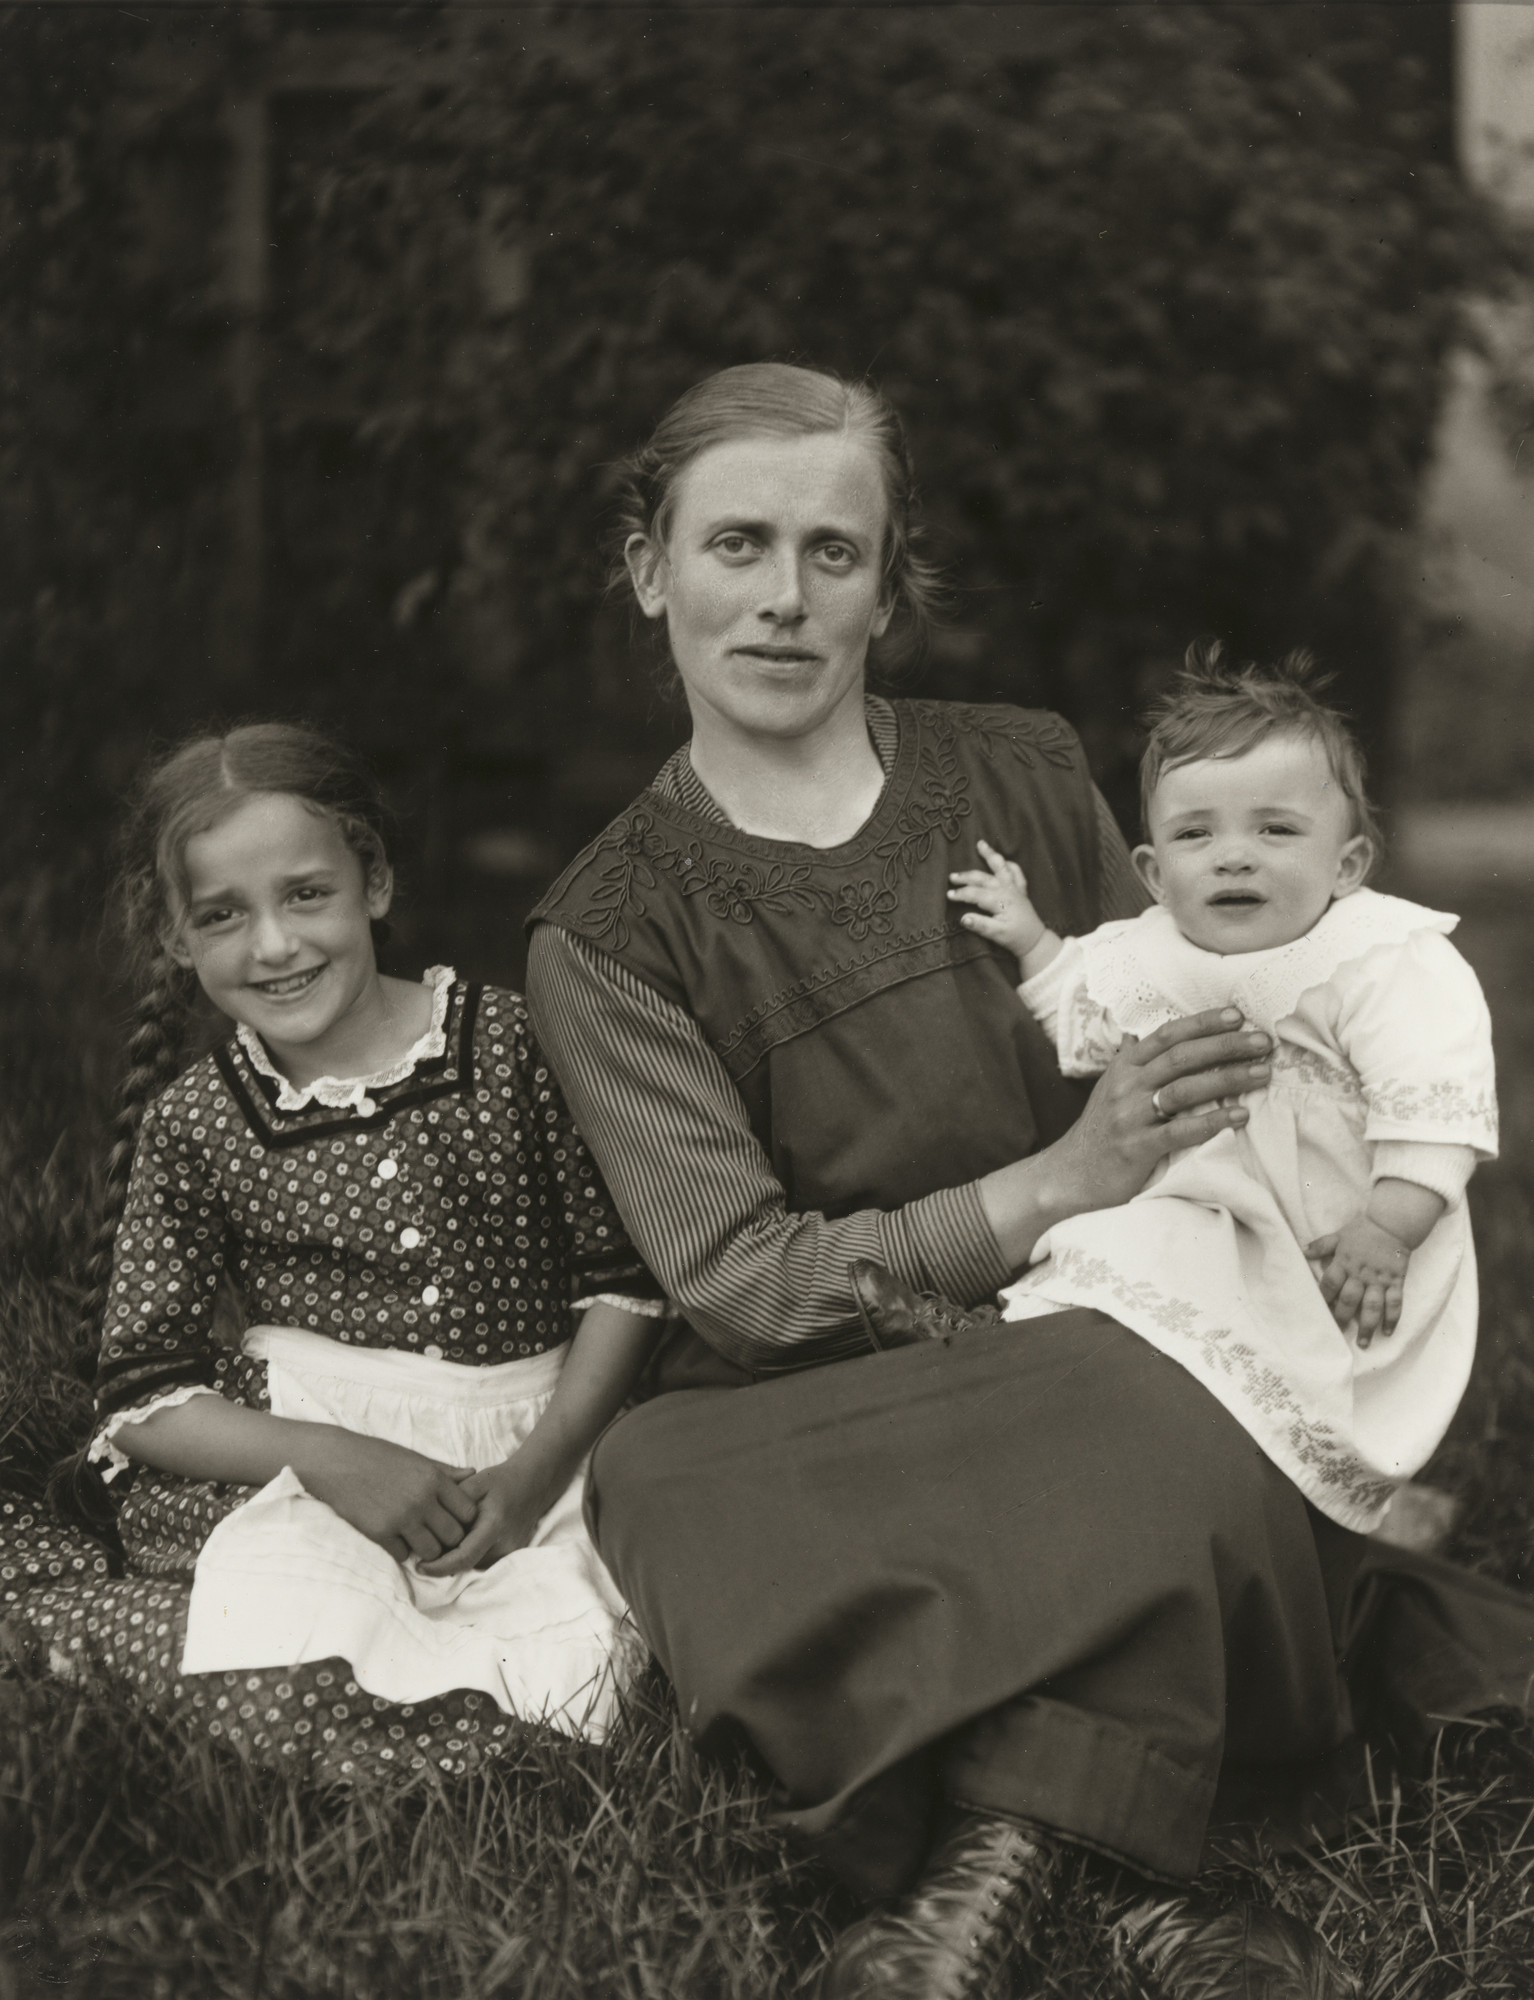 August Sander. Farm Woman and her Children. 1920-25